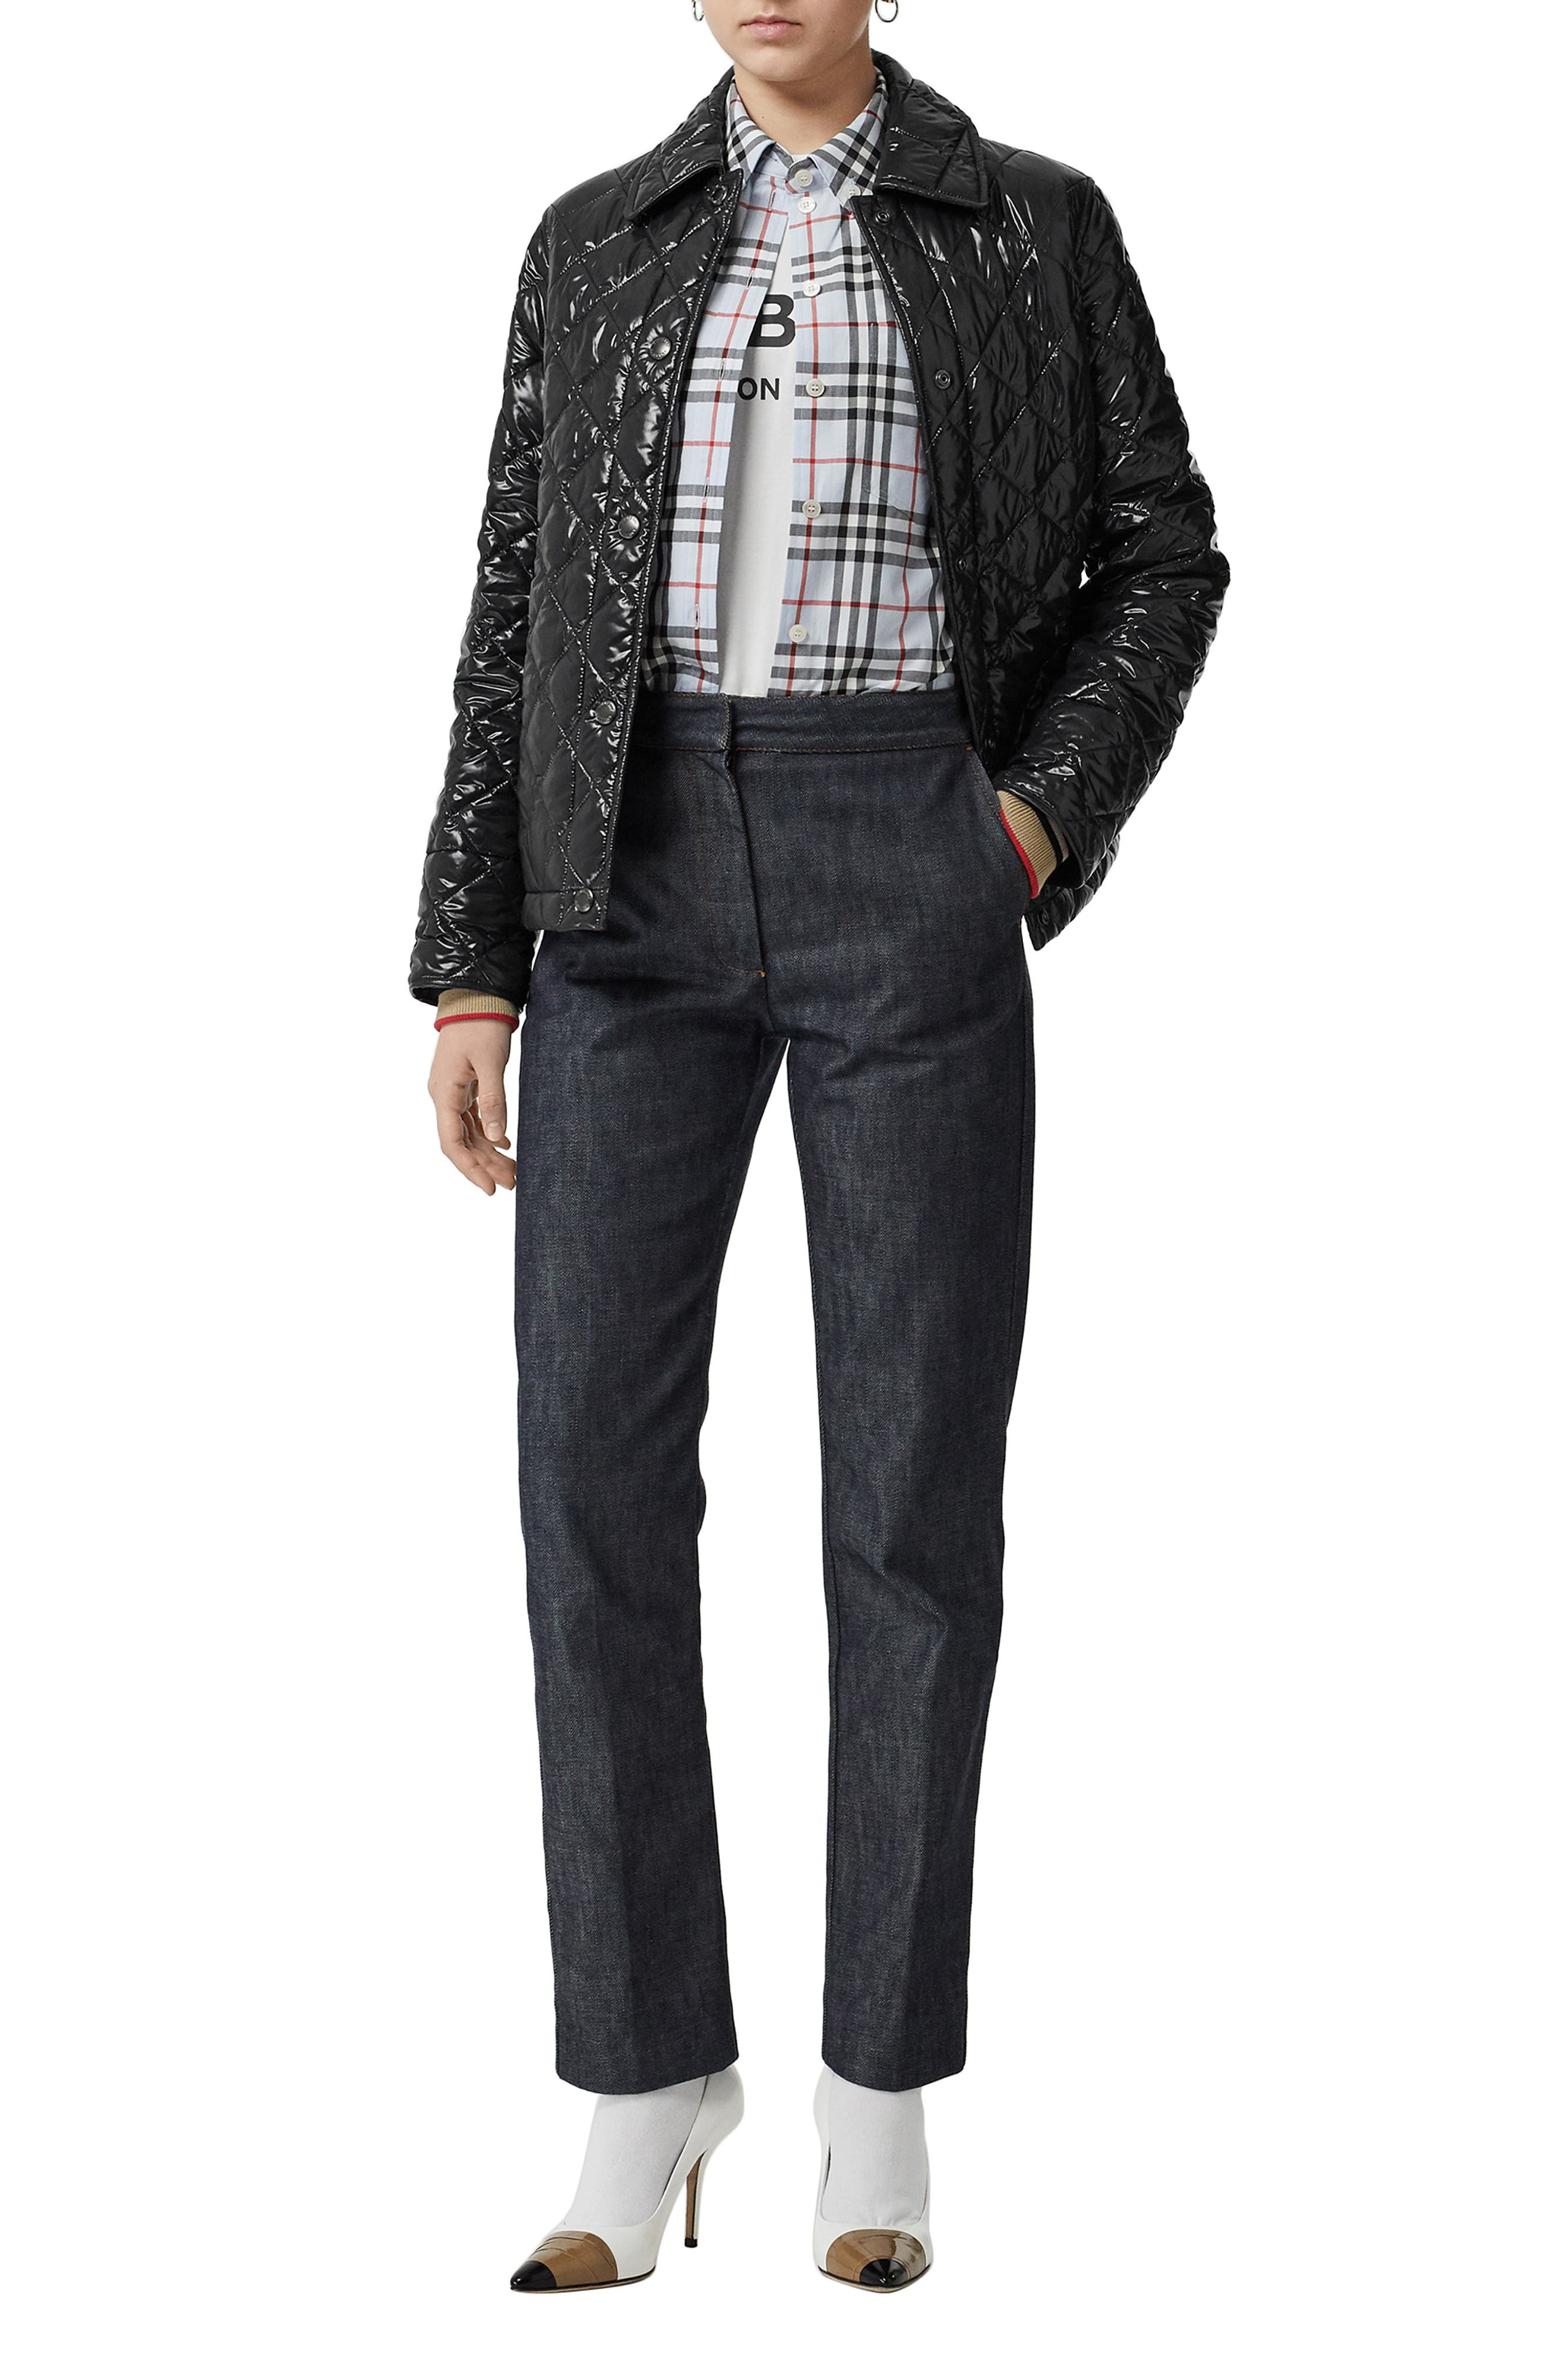 BURBERRY, Heathfield Frinton Knit Cuff Quilted Jacket, Alternate thumbnail 7, color, BLACK